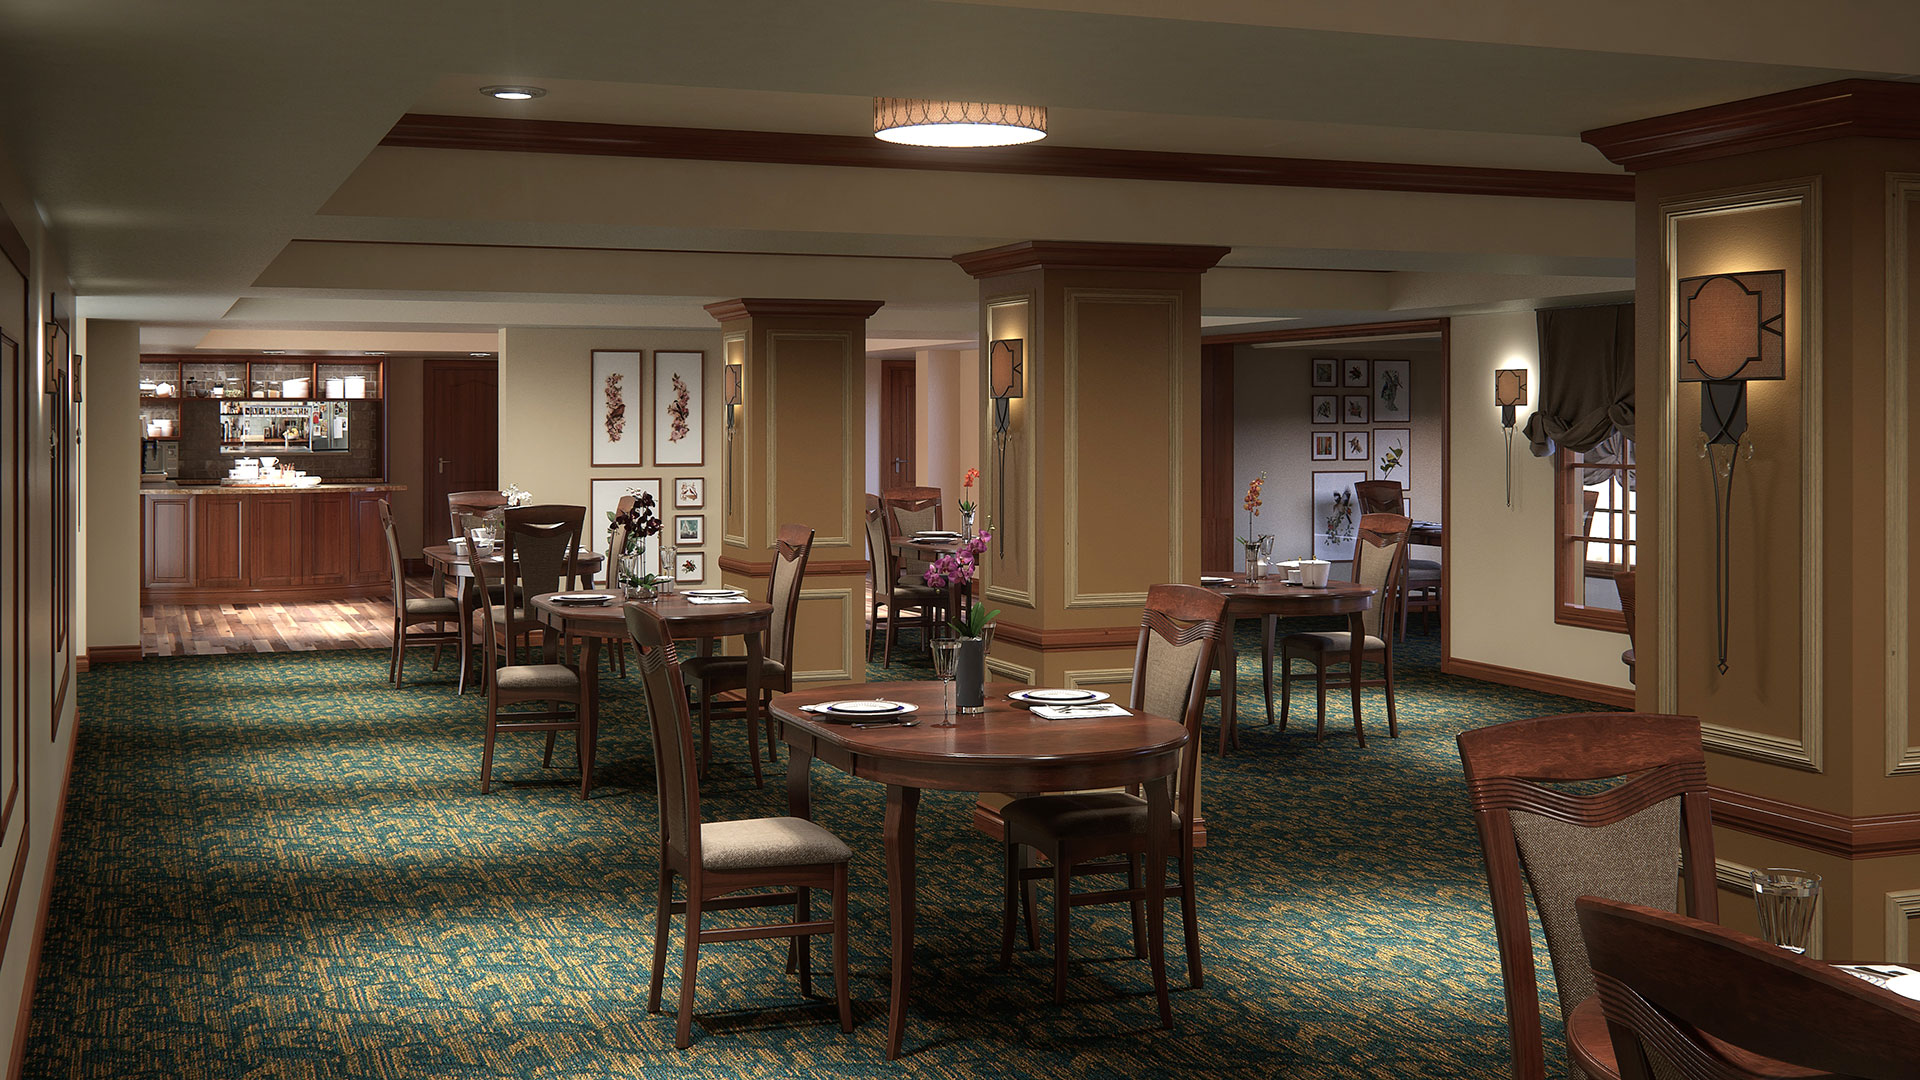 Elder Care Interior Rendering